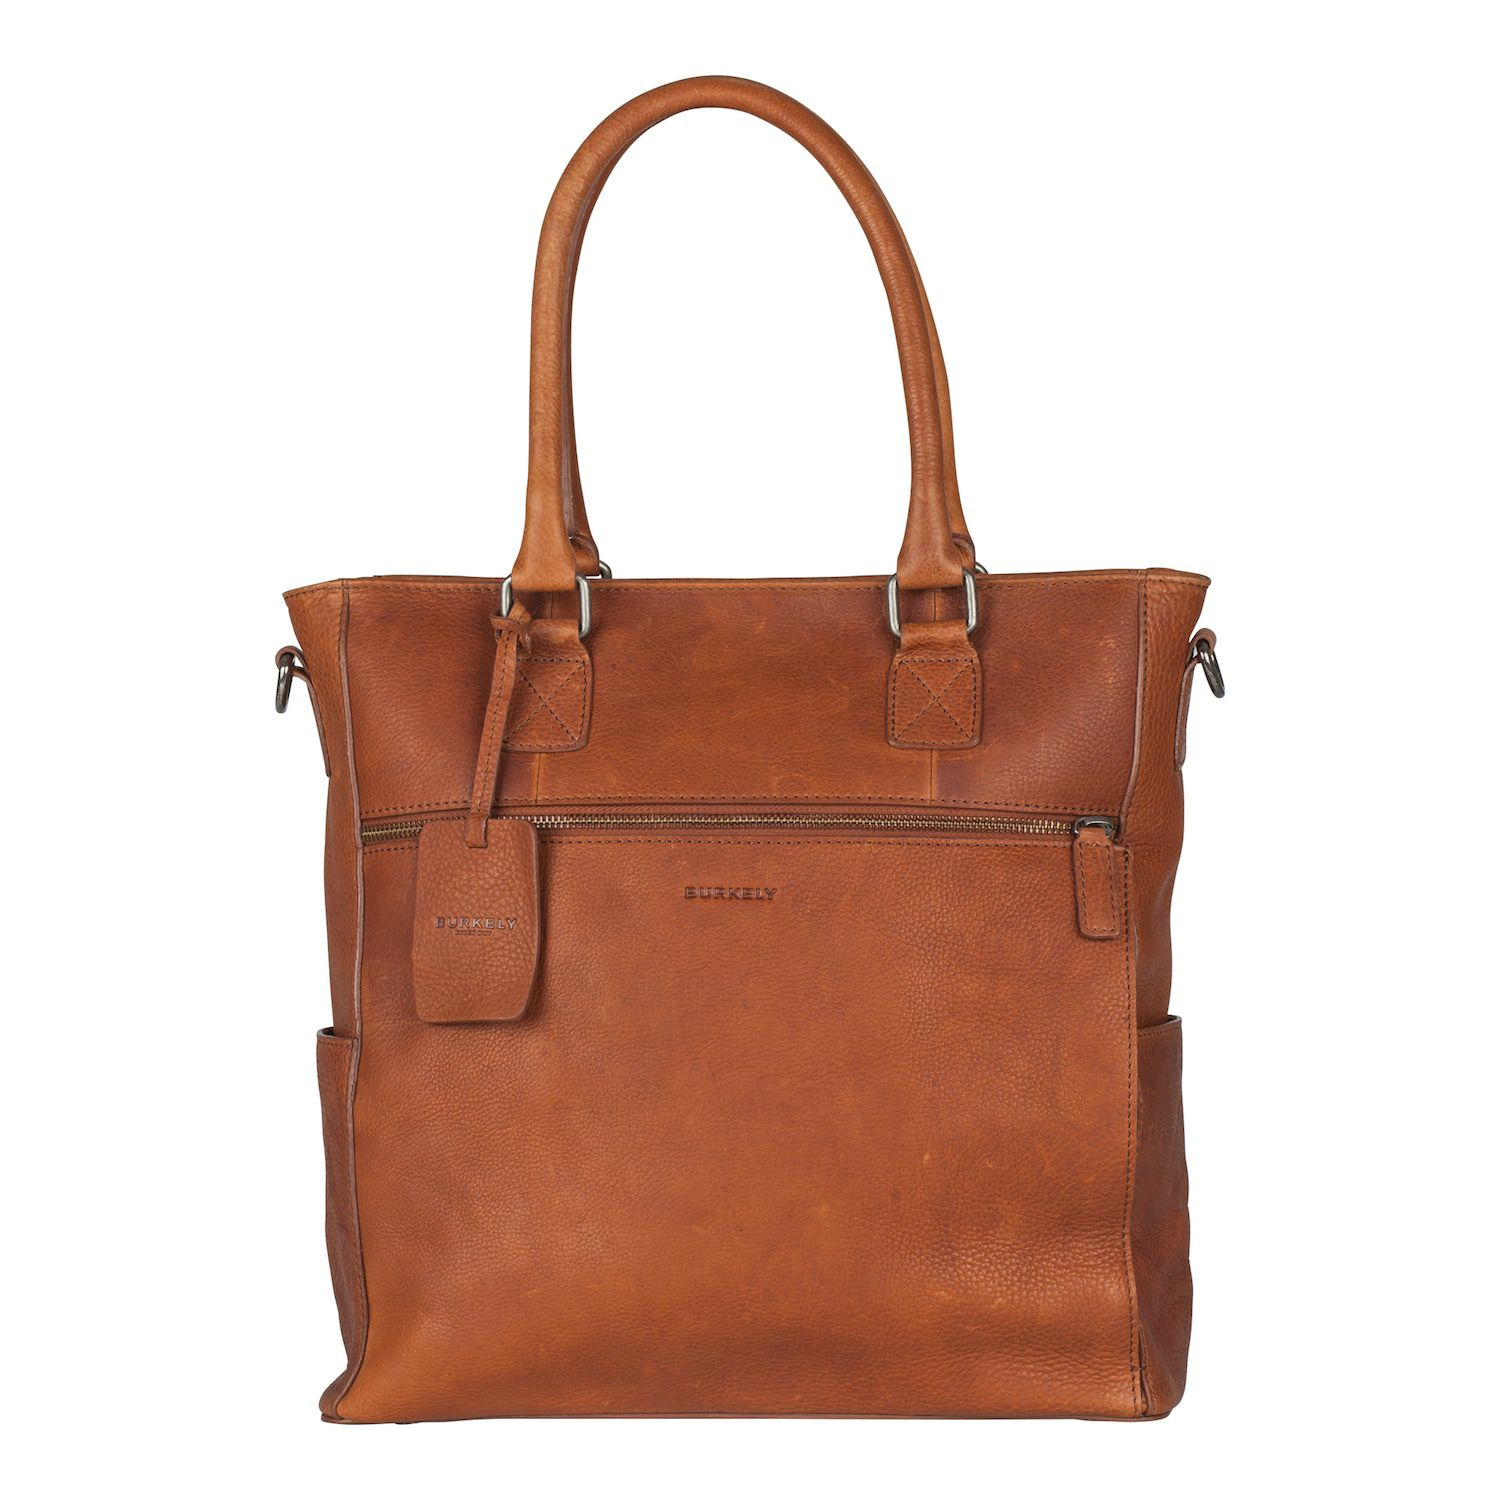 Burkely Antique Avery Shopper Cognac 13.3 inch